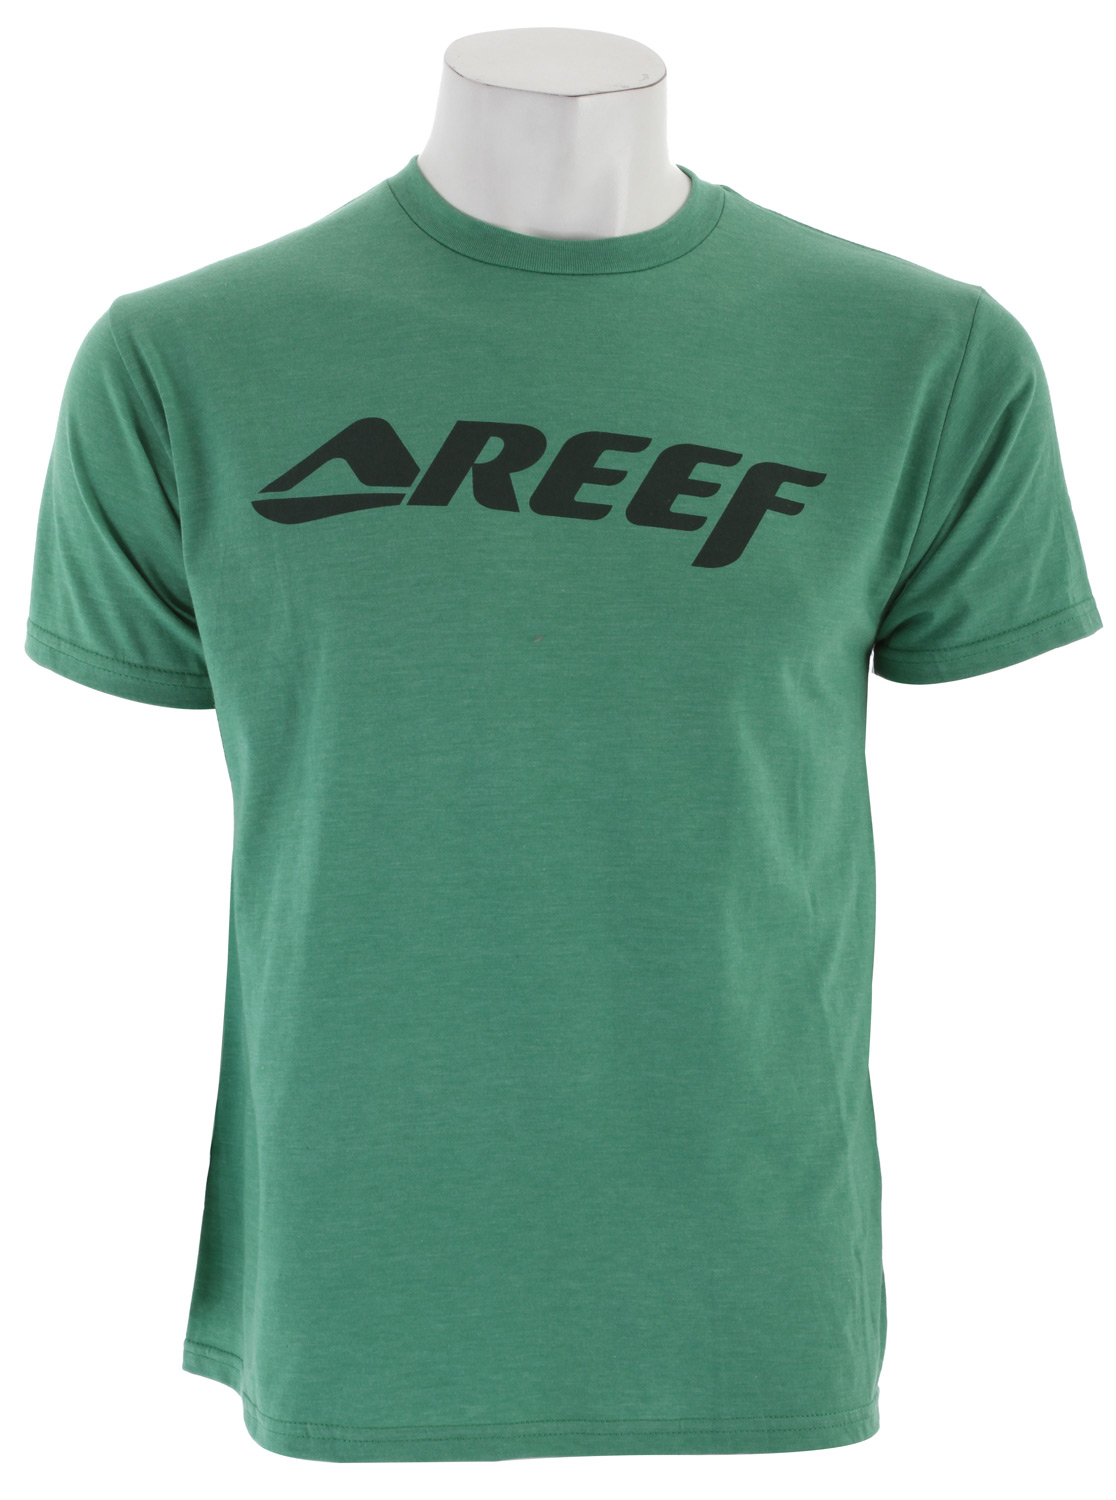 Surf Key Features of The Reef Sea Of Neptune T-Shirt: Slim Fit Crew Neck Short Sleeve 50/50 cotton/poly Center front screen print - $23.00